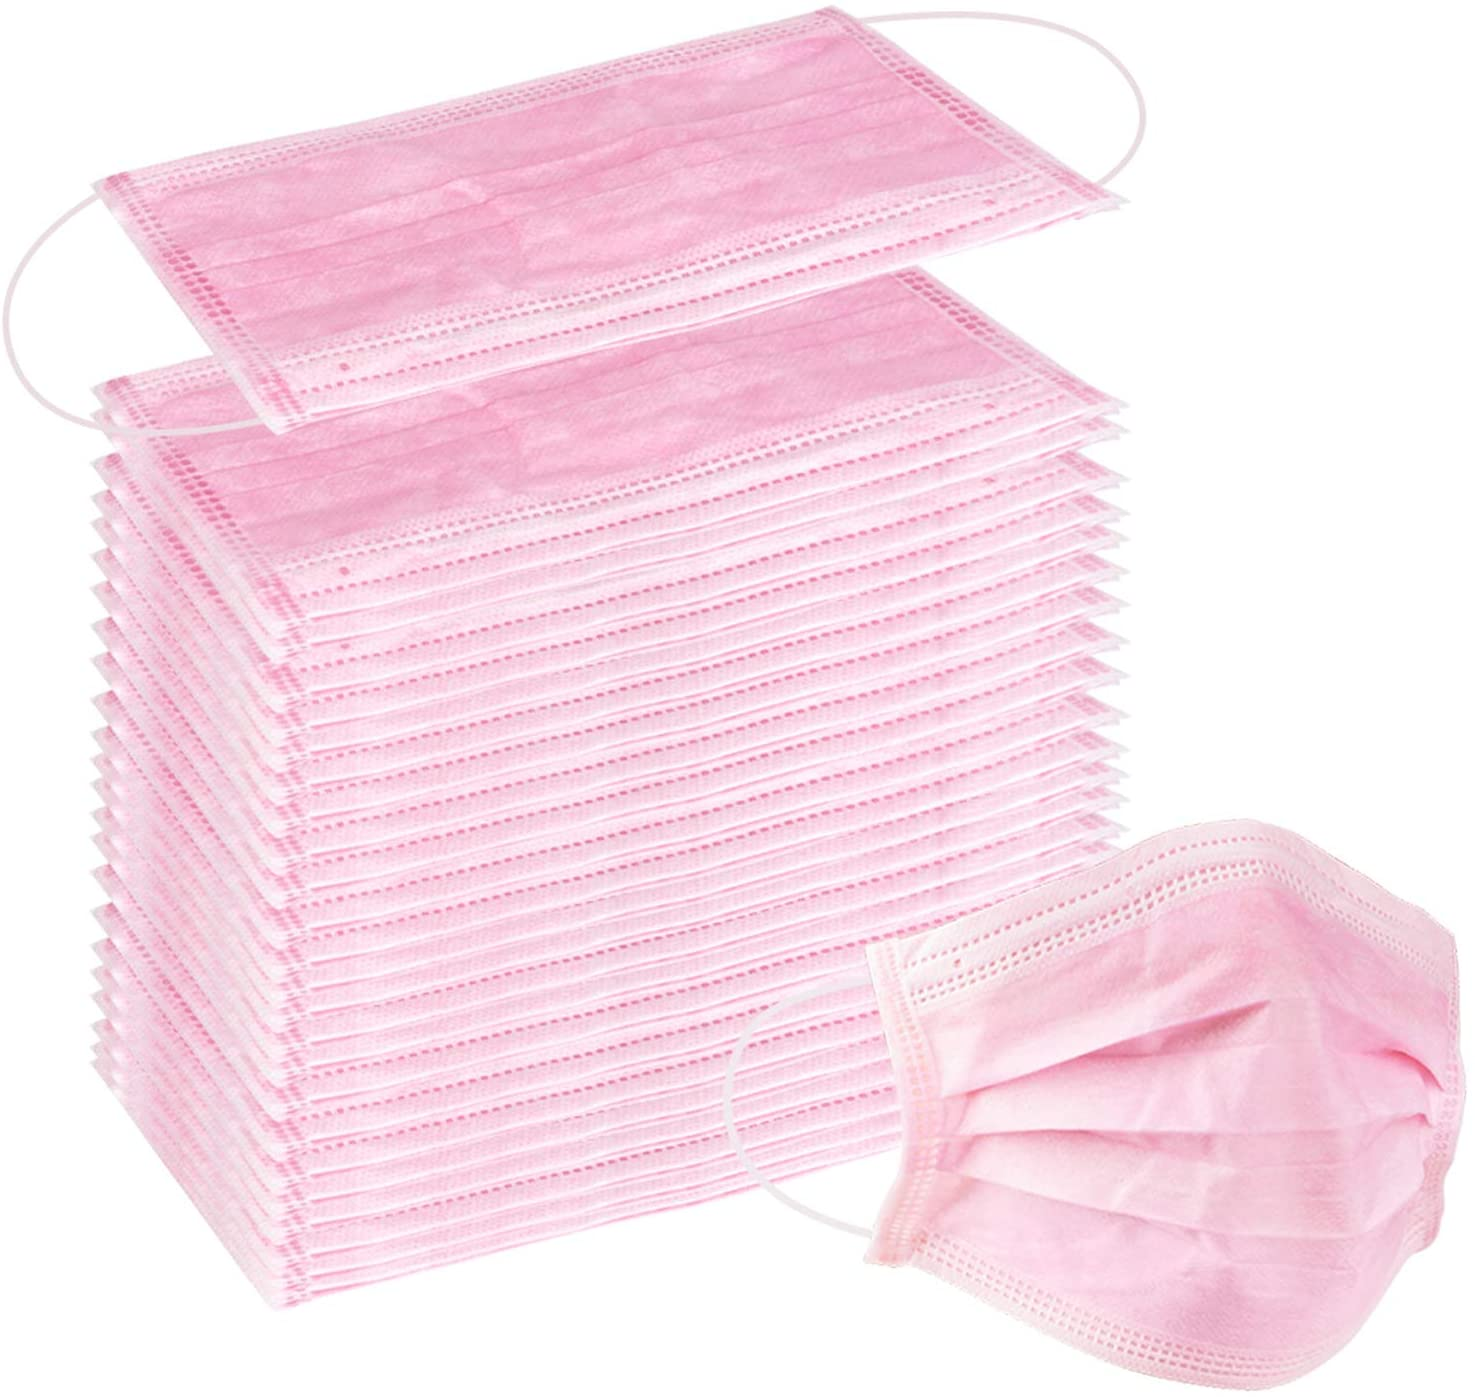 100 Pcs Disposable Earloop Face Masks Dental Surgical Hypoallergenic Breathability Comfort-Great for People with Allergies and The Flu (Pink)